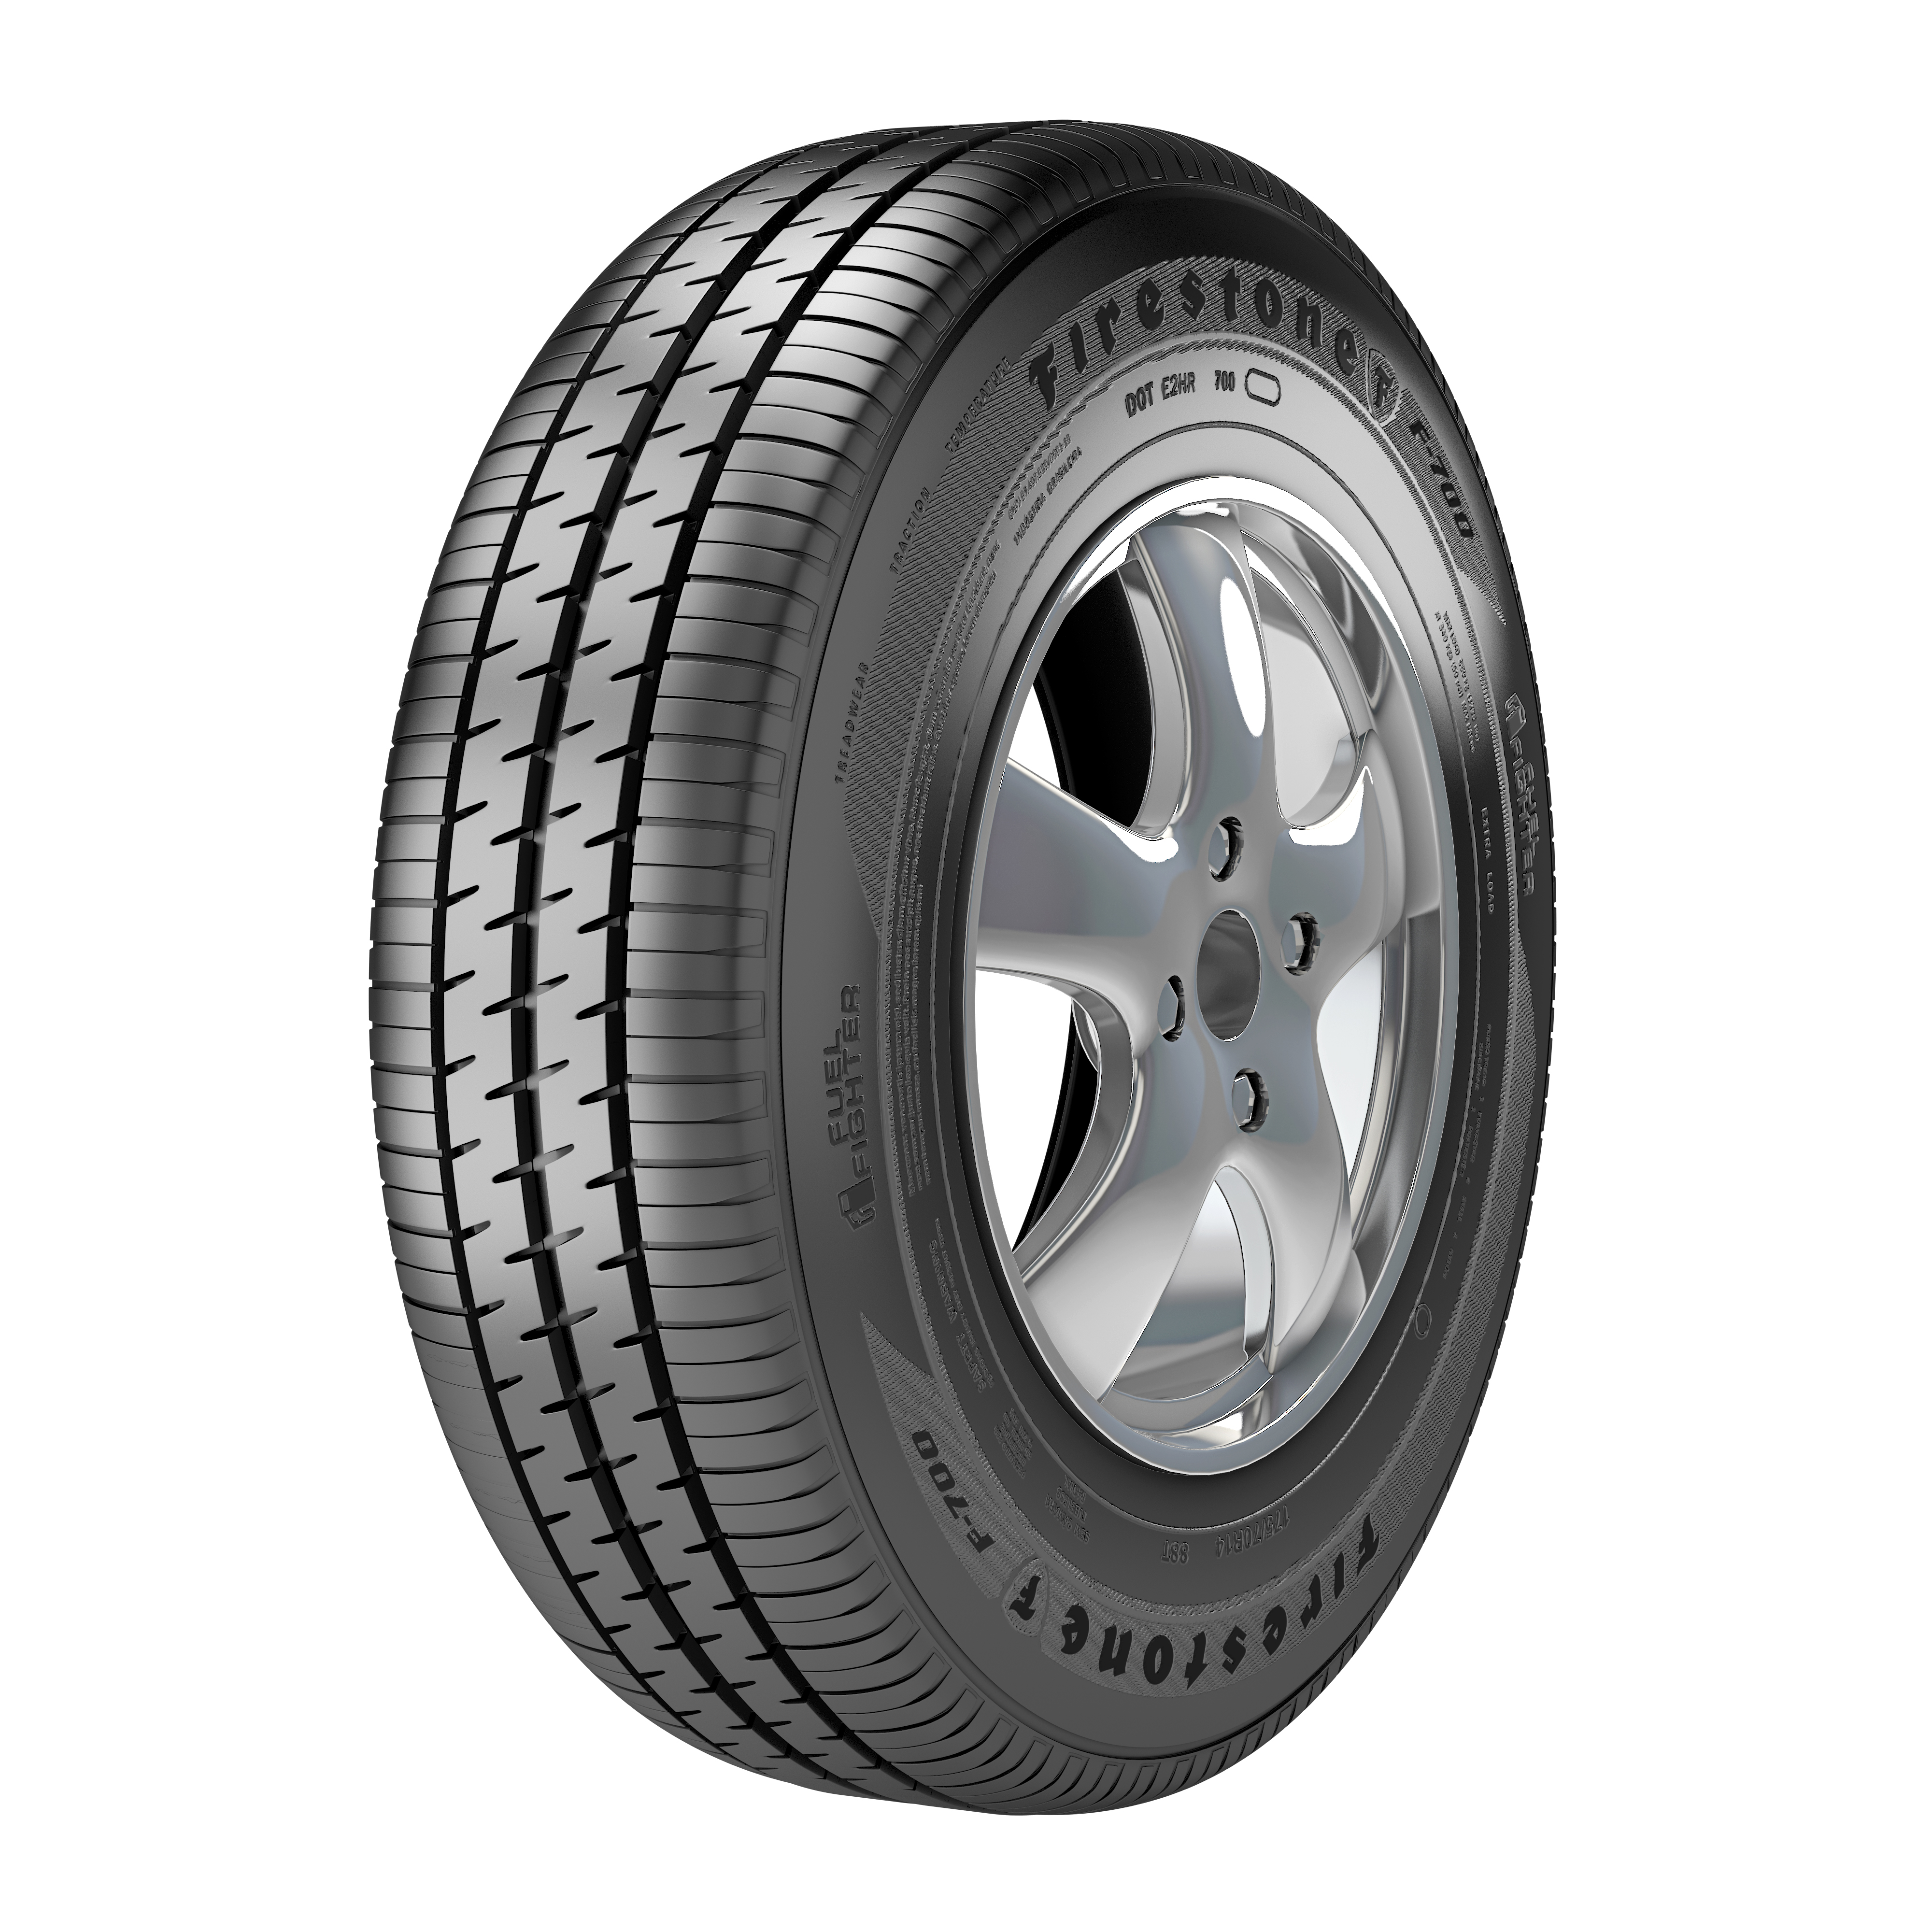 Firestone f-series F-700